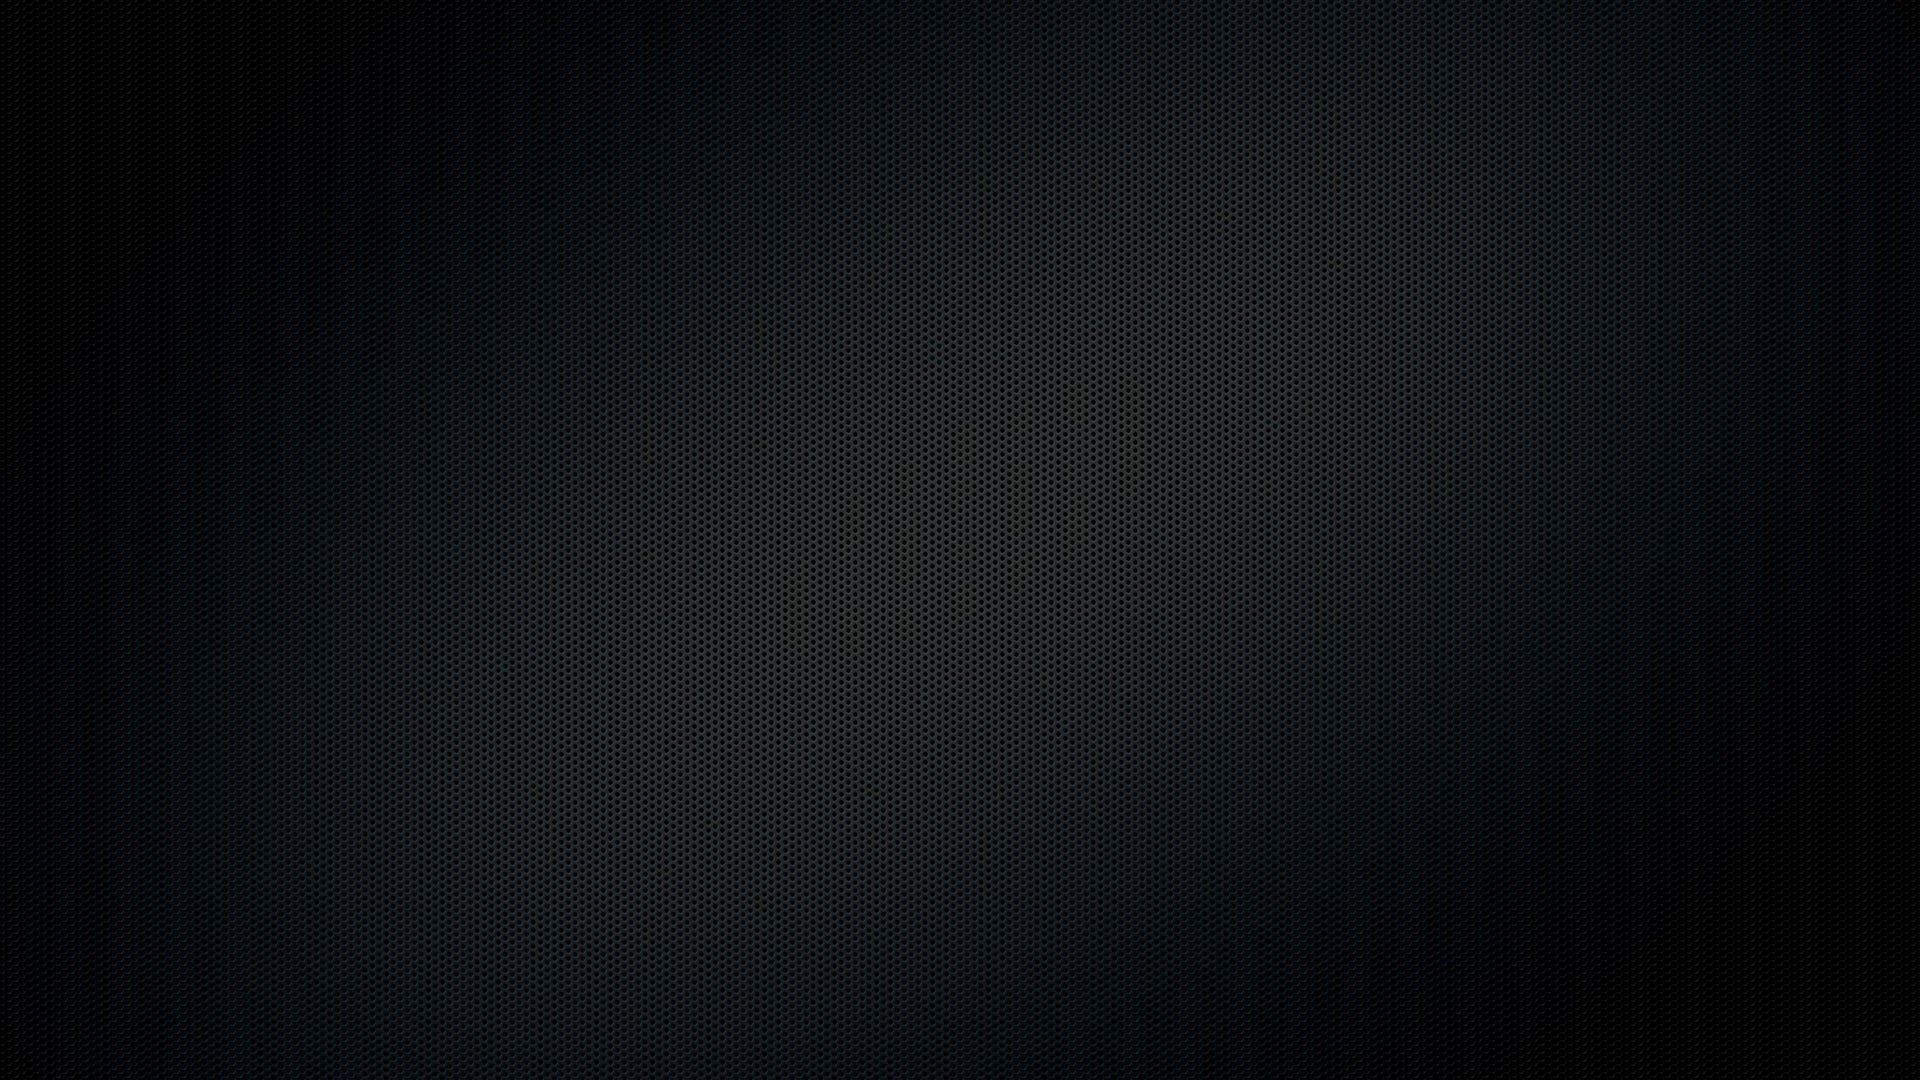 Black Wallpapers 1920x1080  Wallpaper Cave